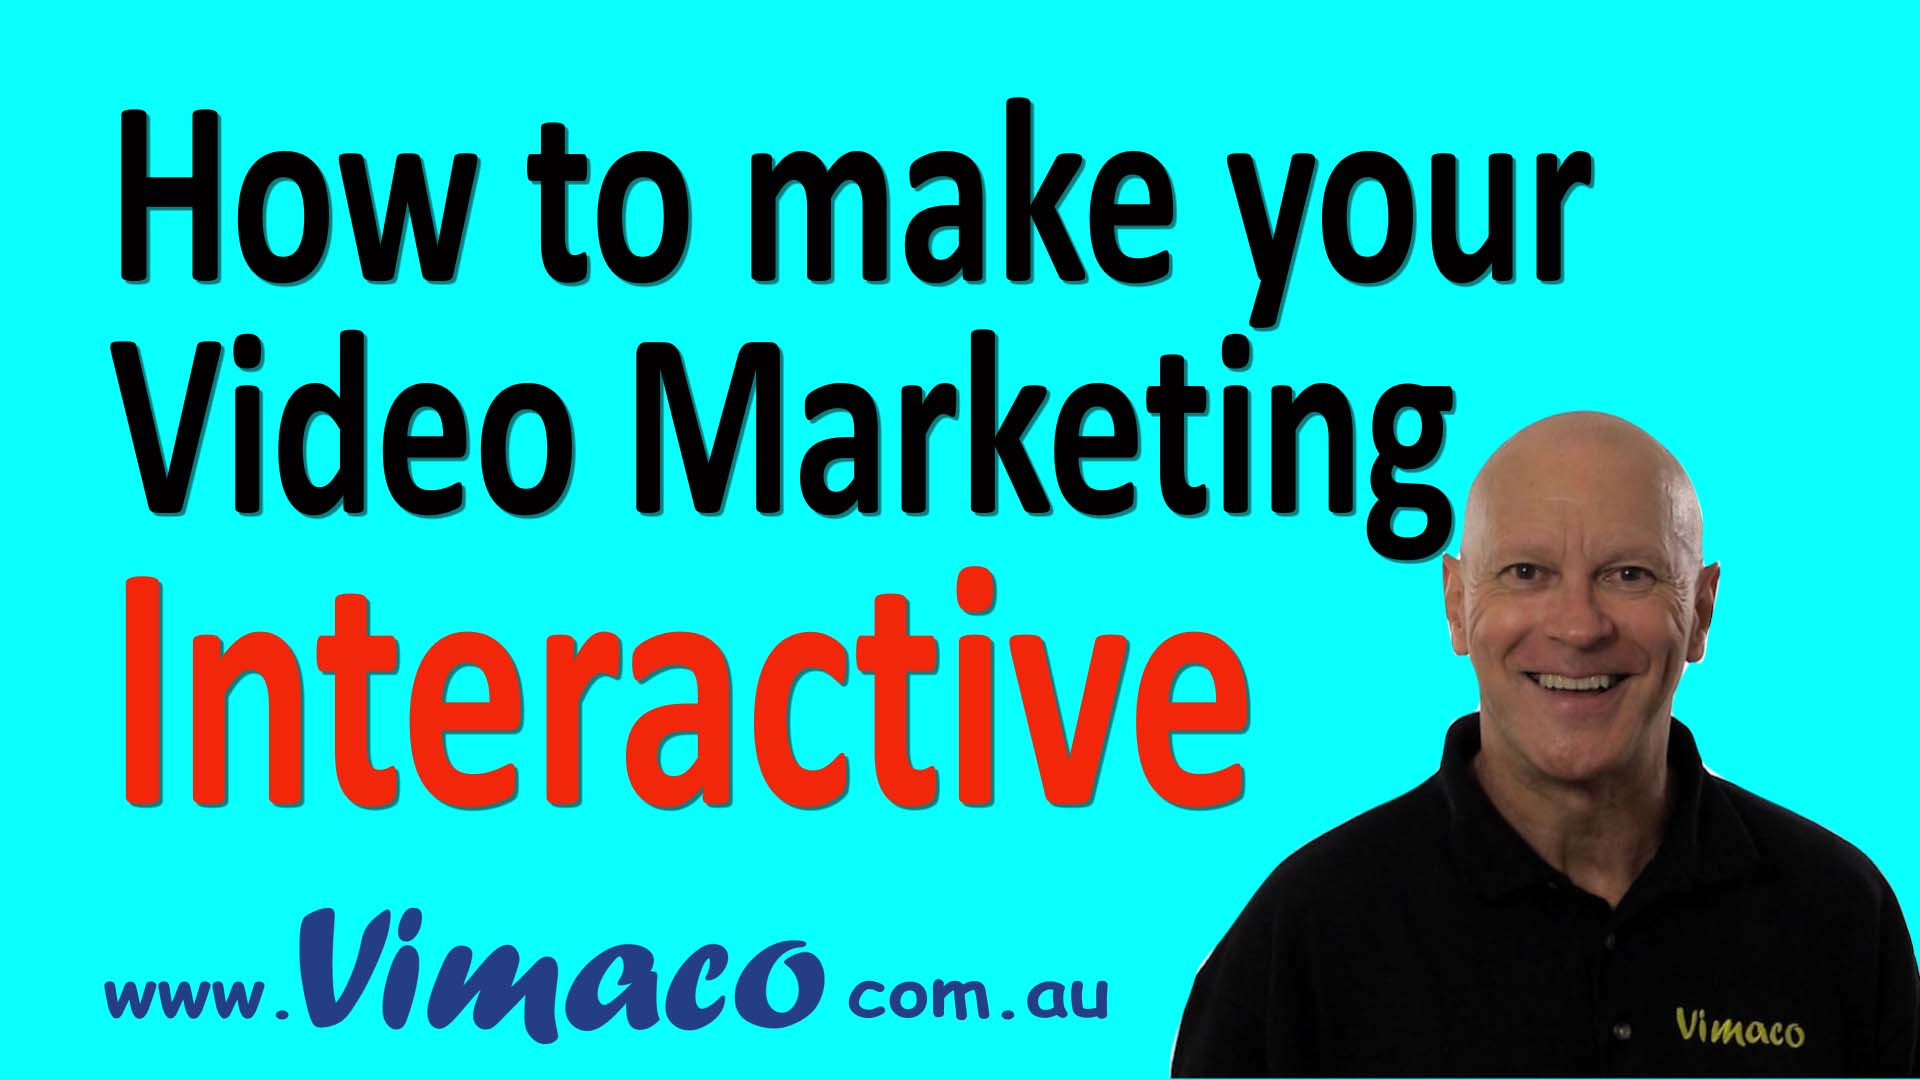 How to make your Video Marketing Interactive.